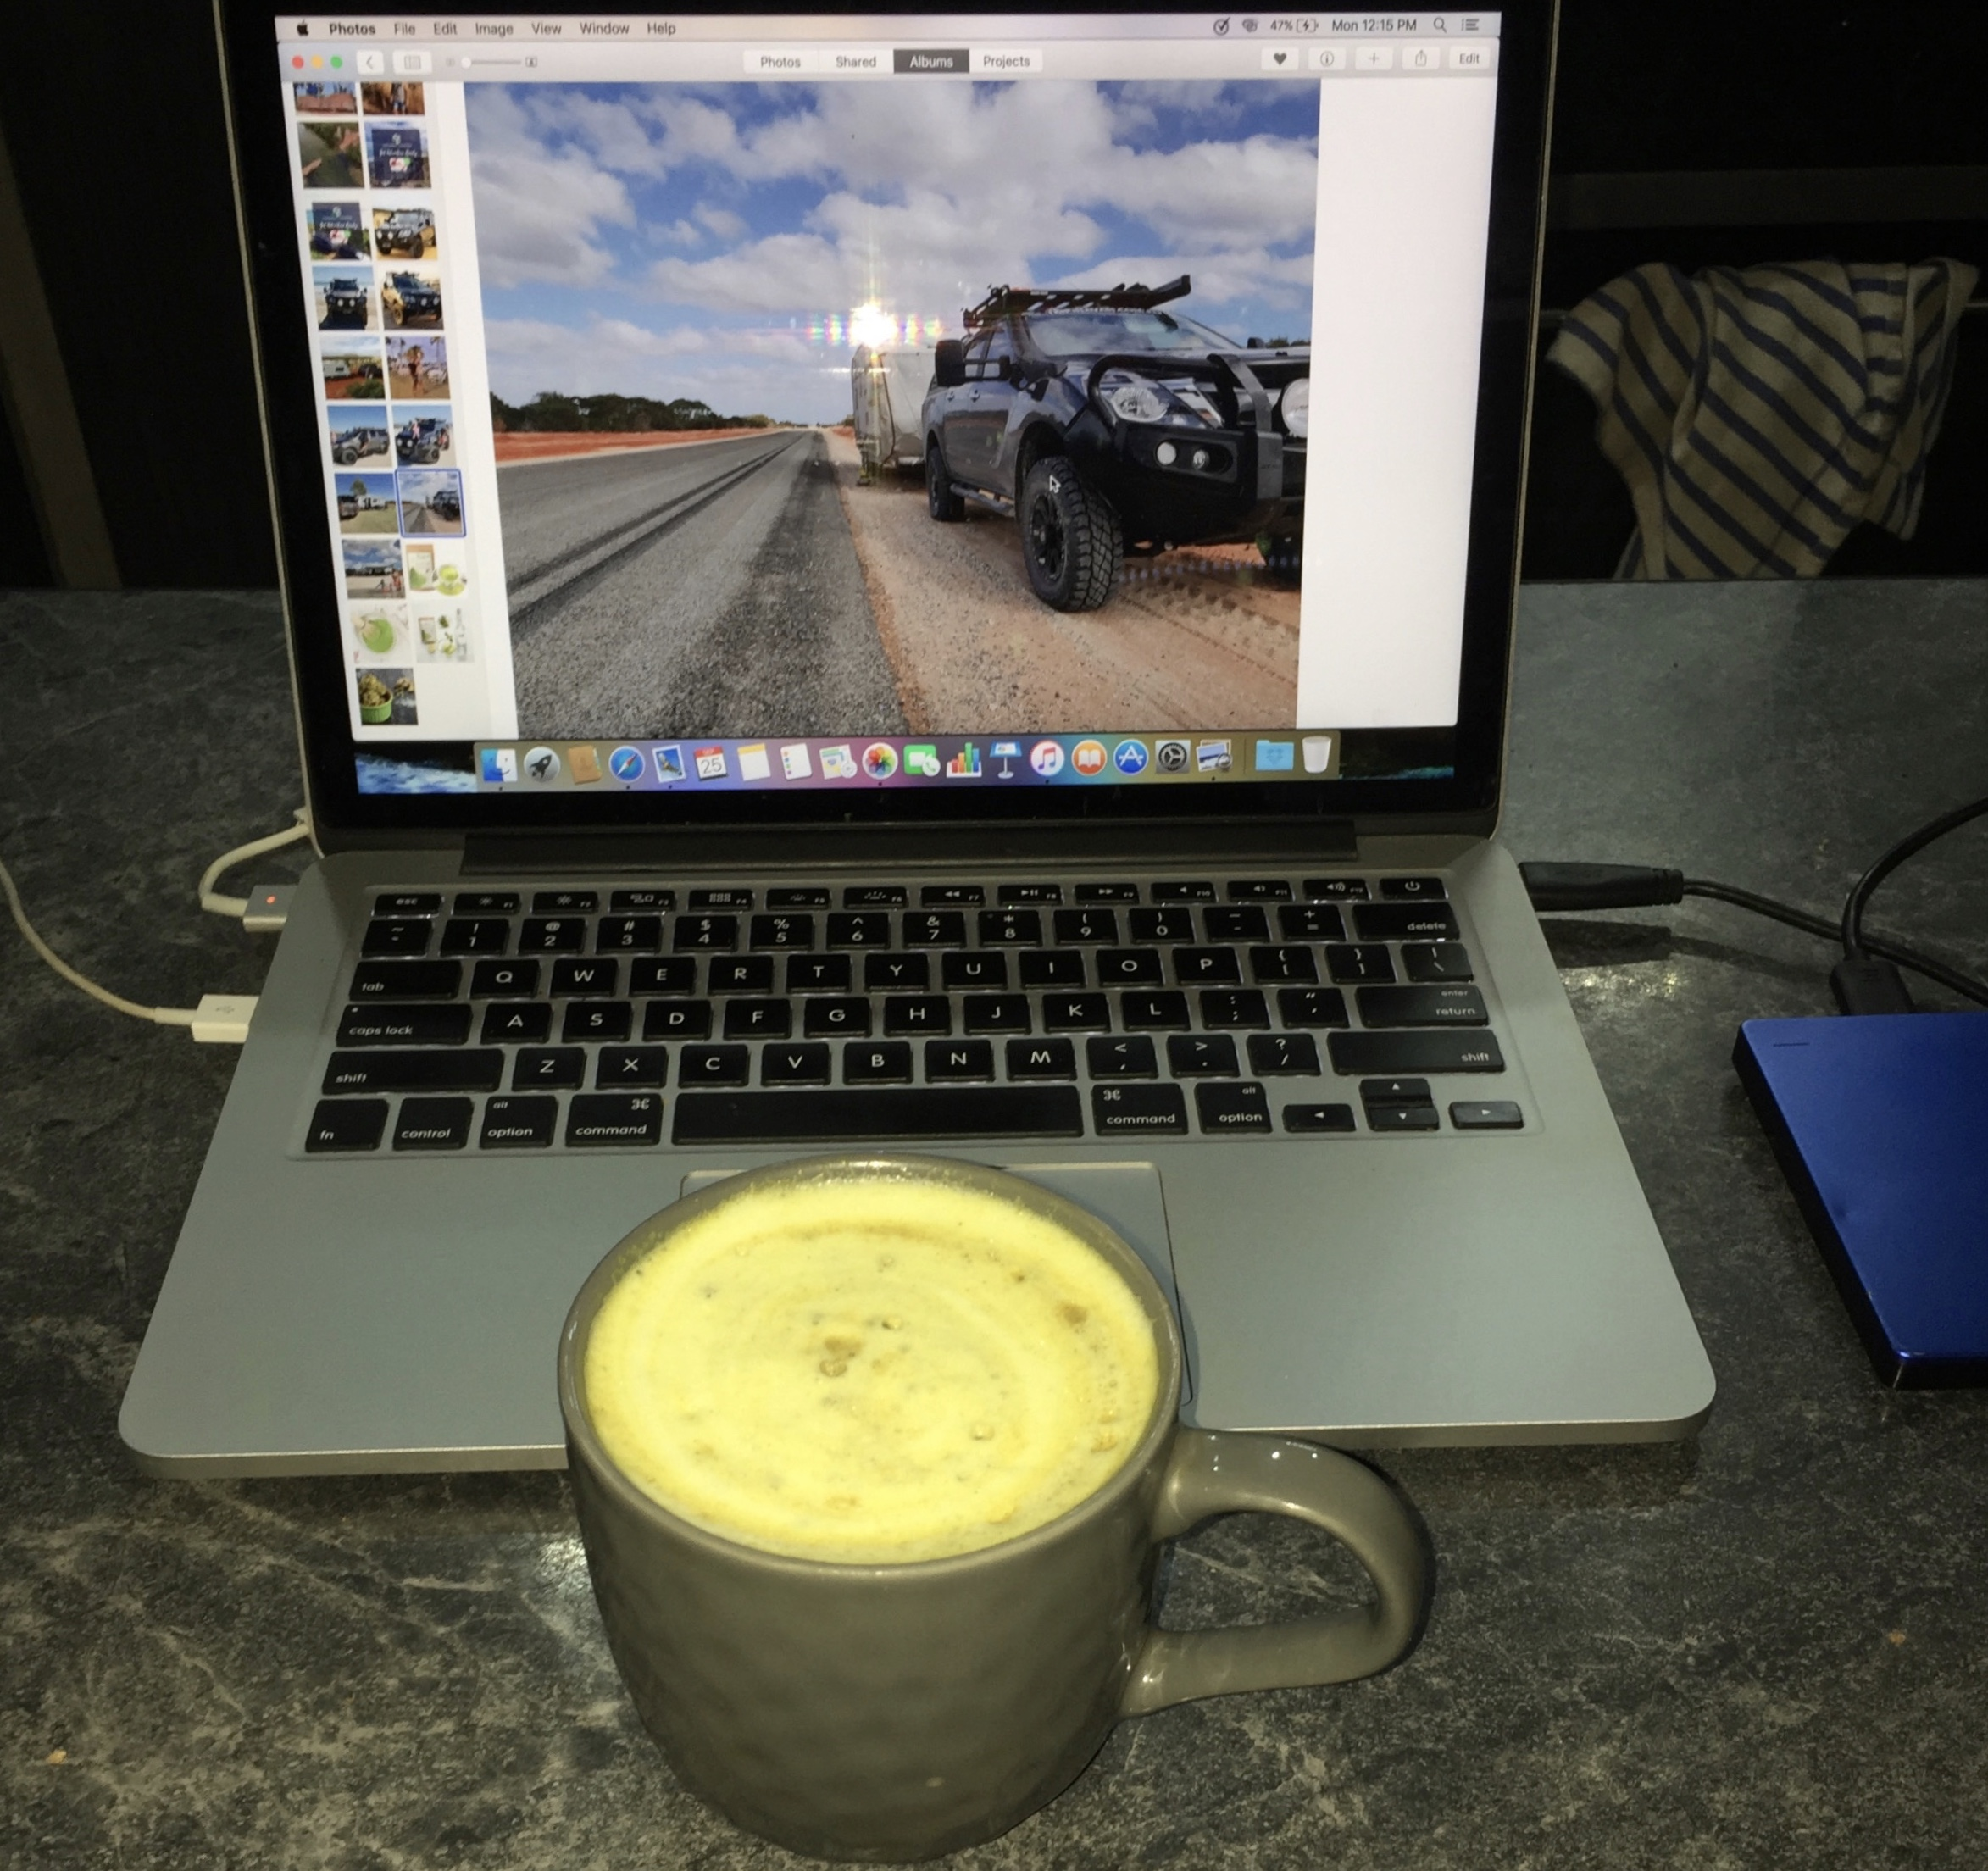 THE MATCHA TURMERIC LATTE - MY GO TO BEVERAGE FOR FOCUS AND CONCENTRATION.